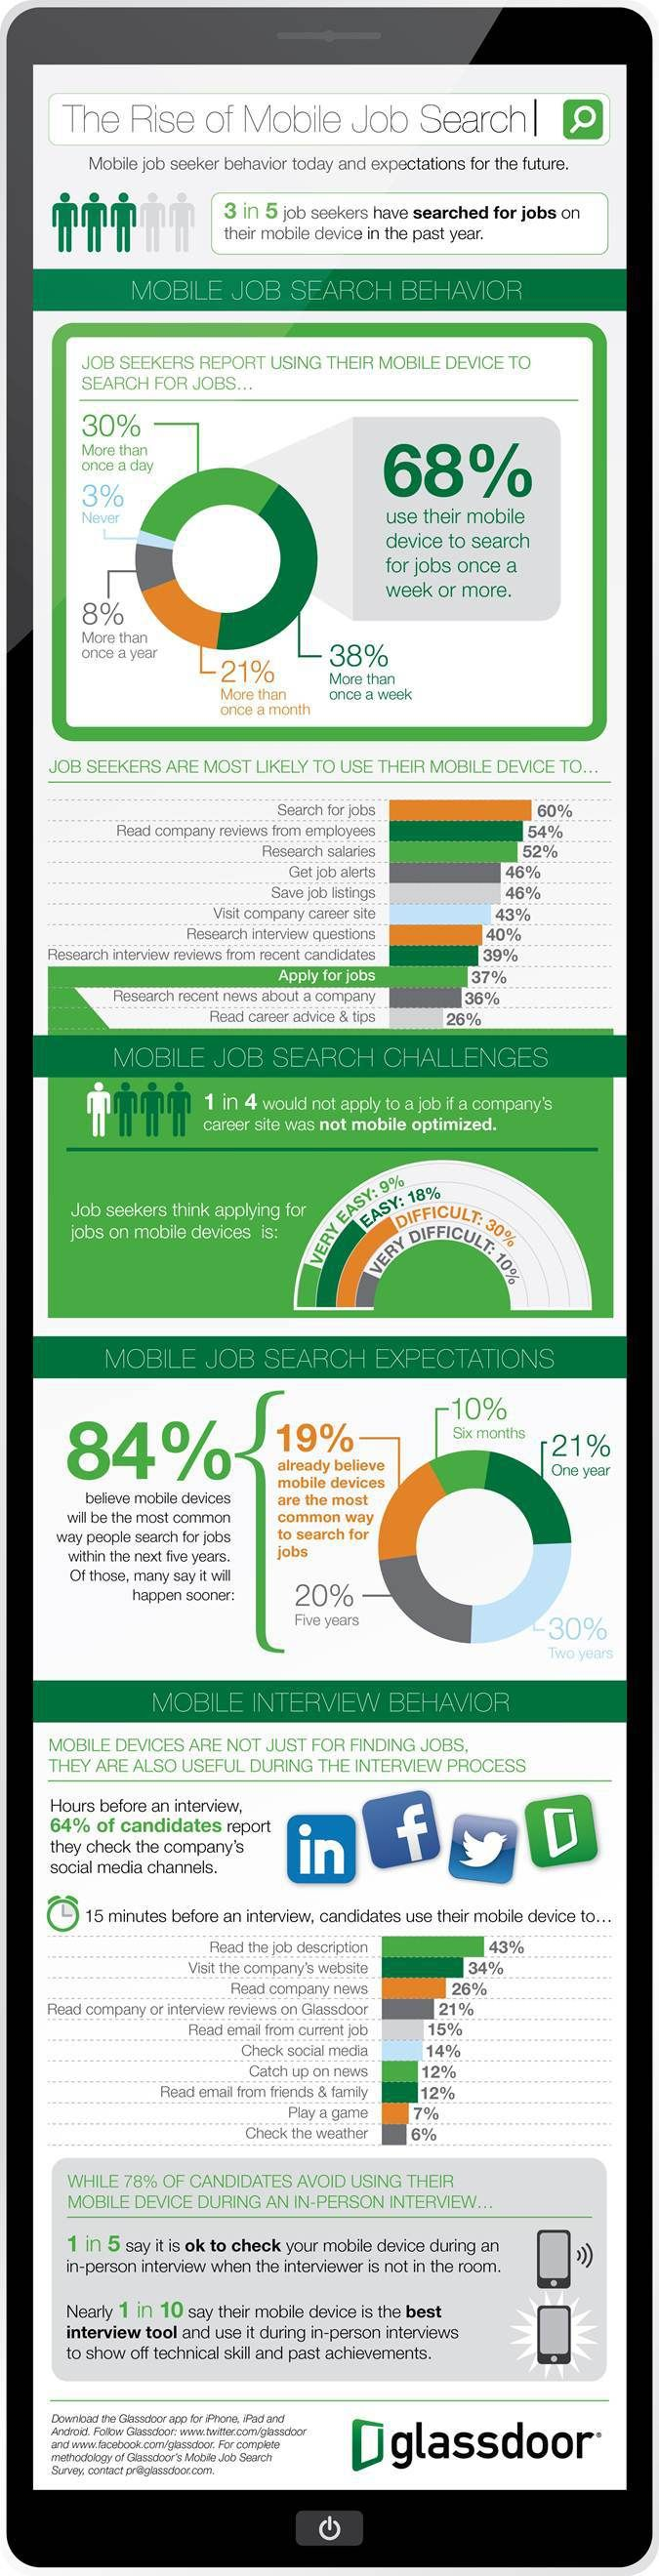 Job seekers go mobile to find their dream job (infographic)    Read more at http://venturebeat.com/2013/05/24/job-seekers-go-mobile-to-find-their-dream-job-infographic/#cSAeDDLJopiZ2K8S.99    To learn more about Jobjuice mobile apps visit www.jobjuice.com